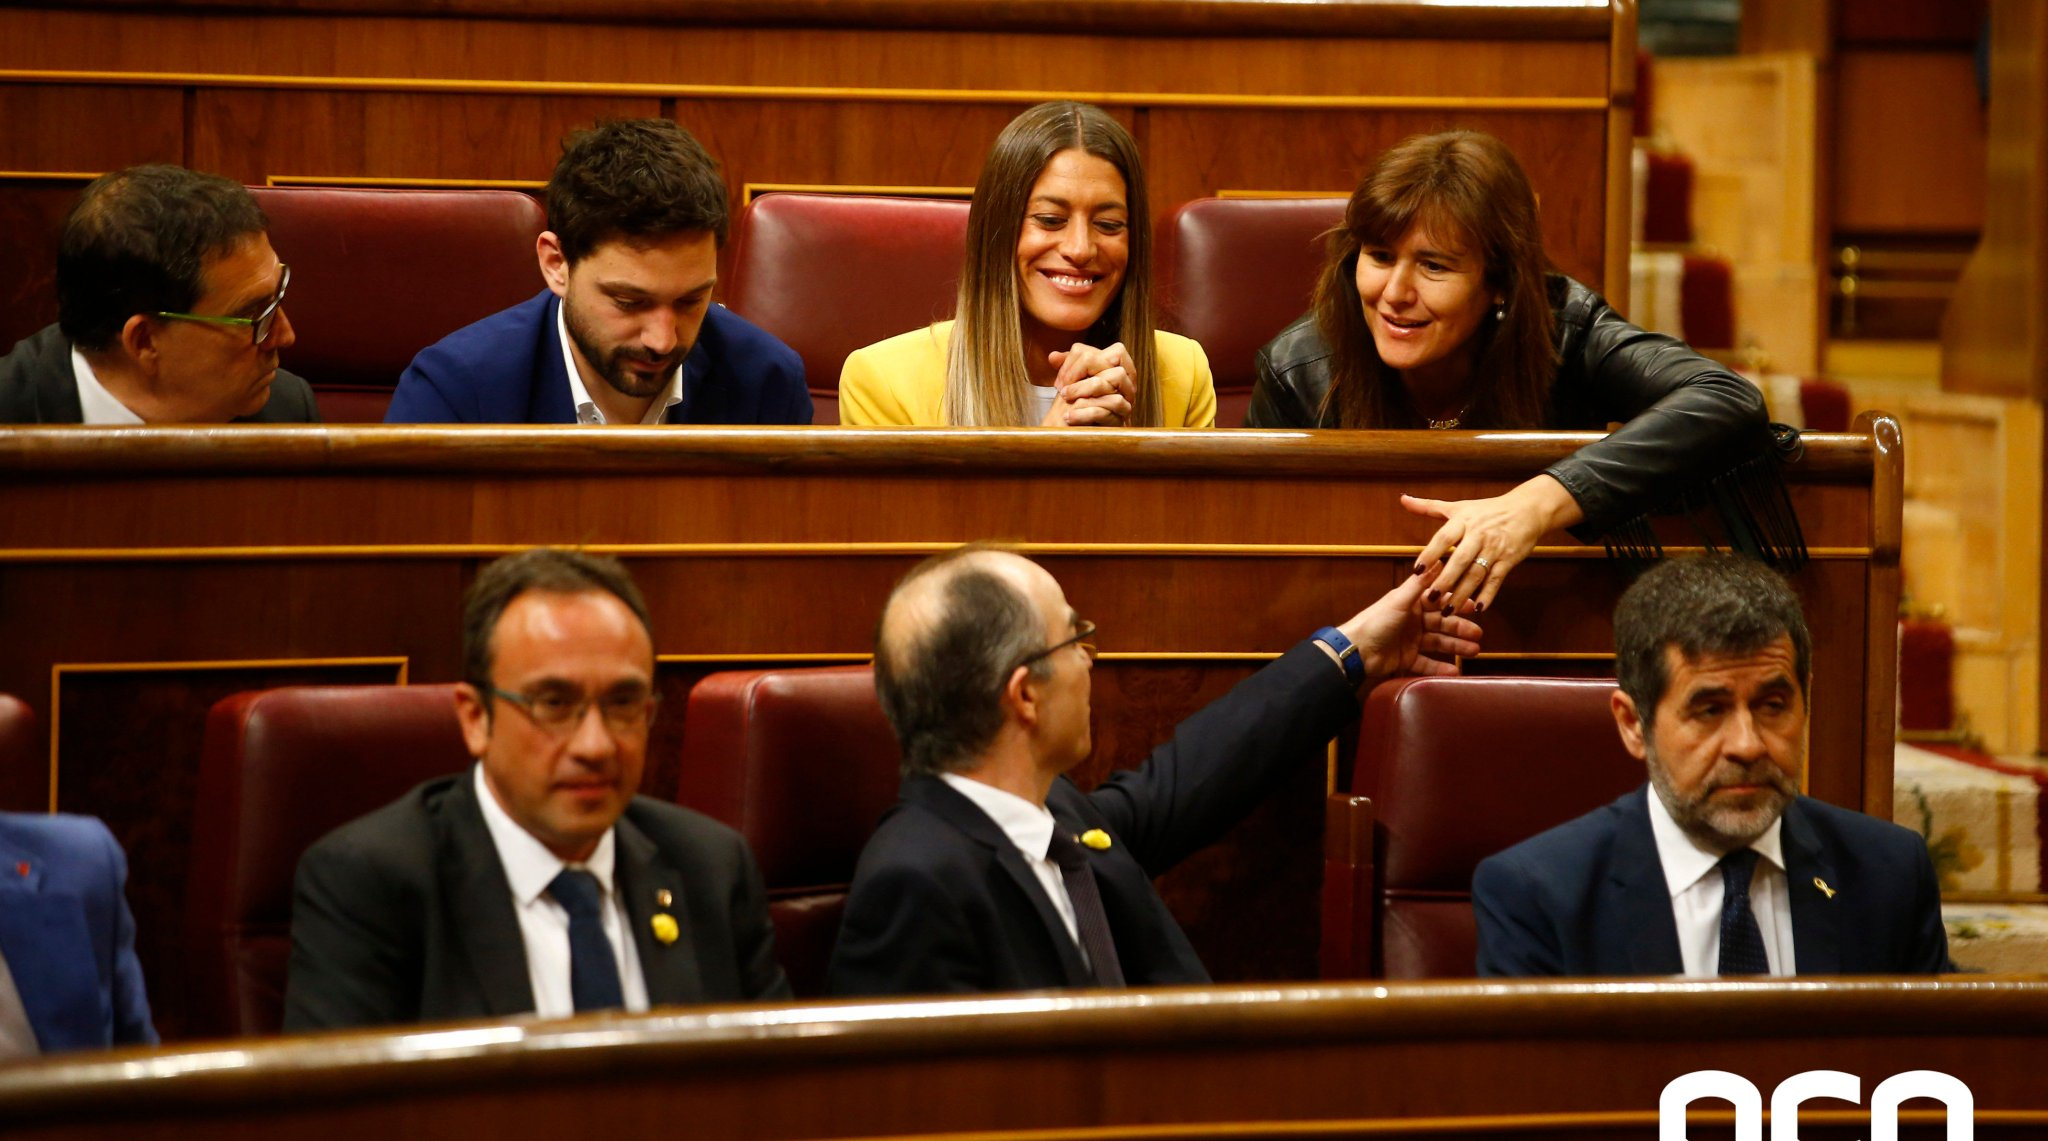 #BREAKING Spanish congress bureau suspends 4 pro-independence jailed leaders as MPs three days after taking up their seats https://t.co/SbBIR4FBee